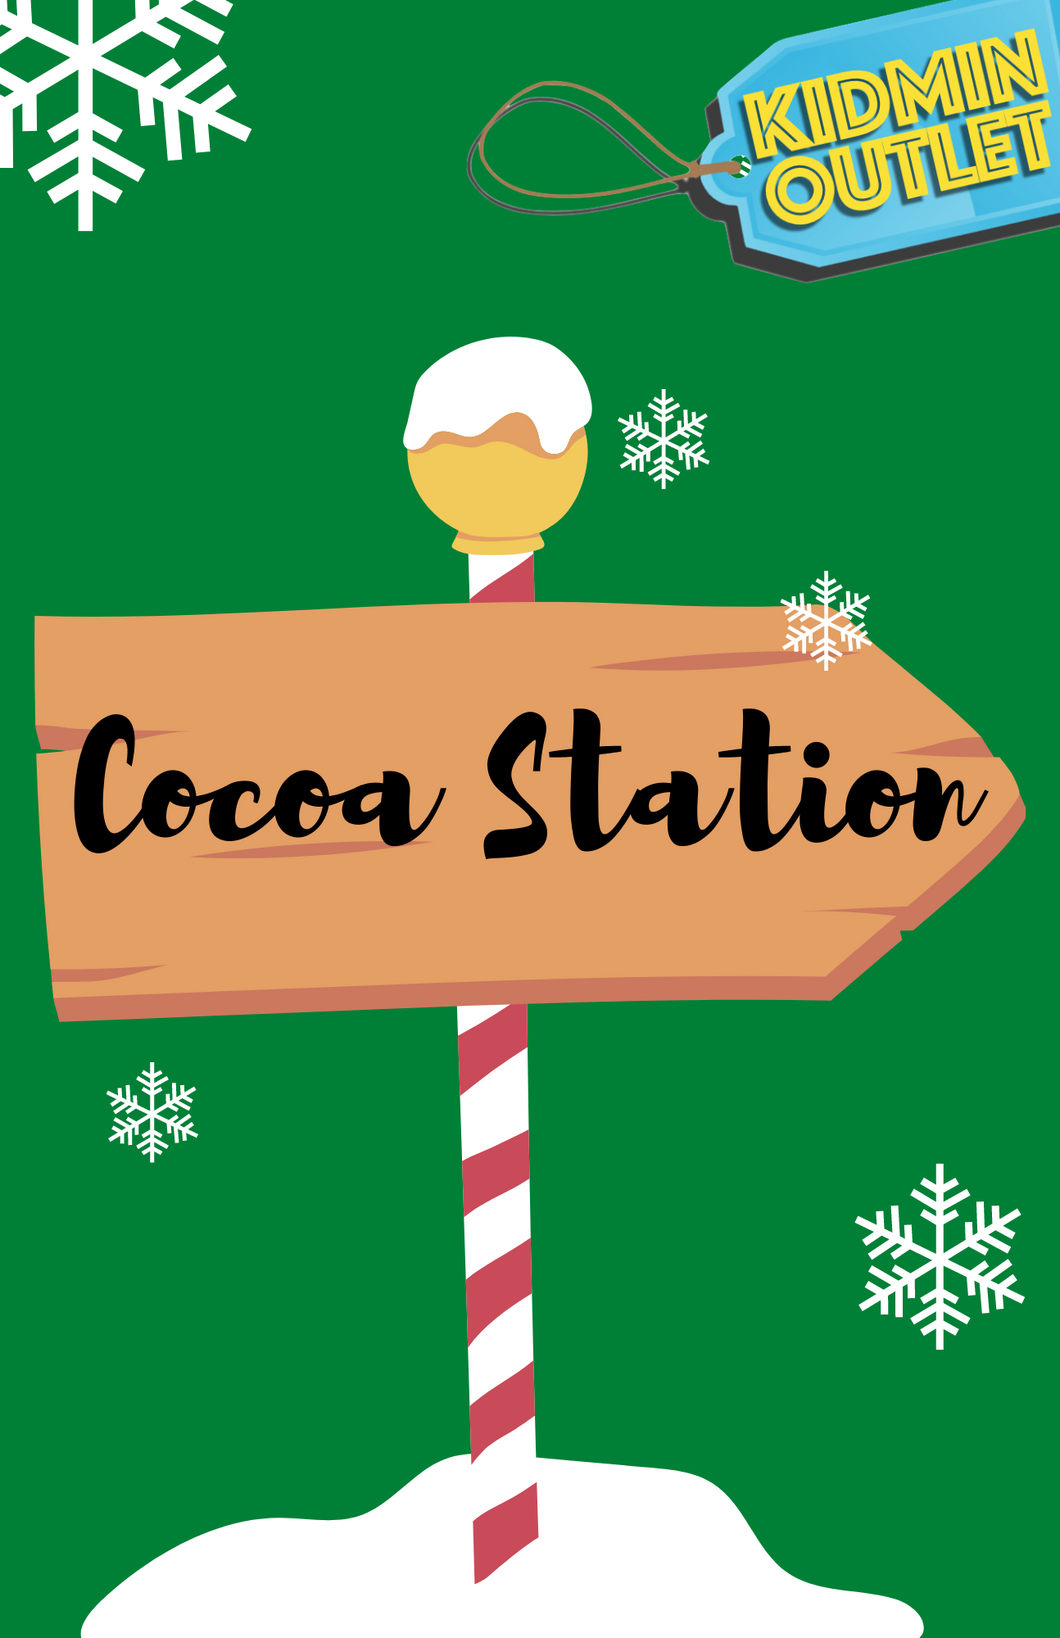 Cocoa Station Signs